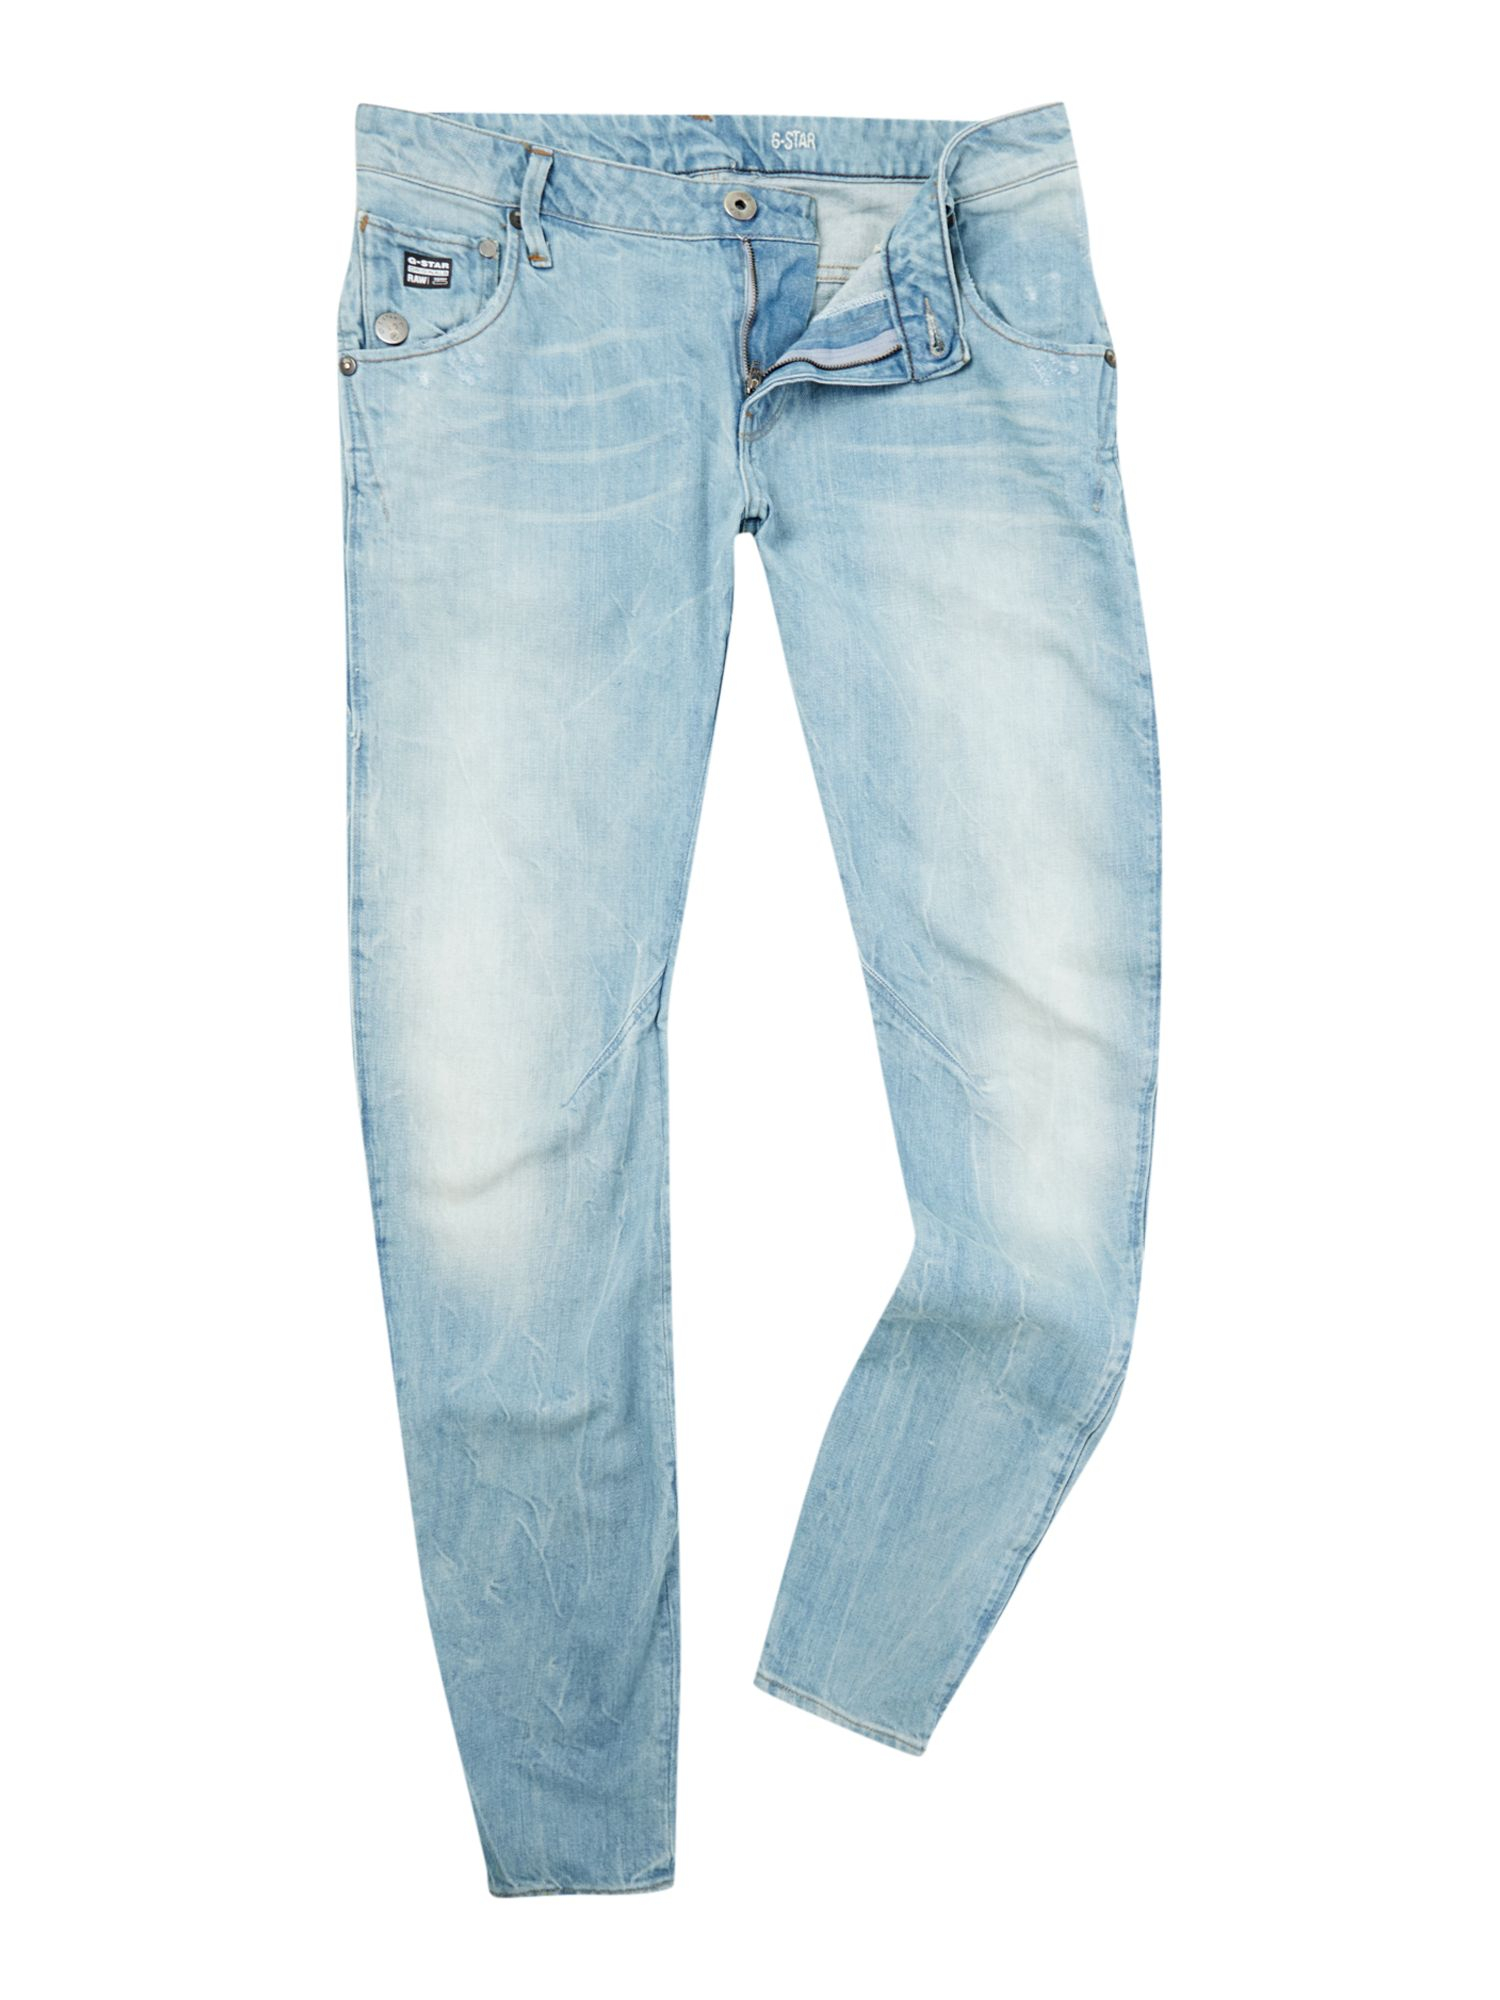 Find great deals on eBay for denim washed jeans. Shop with confidence.